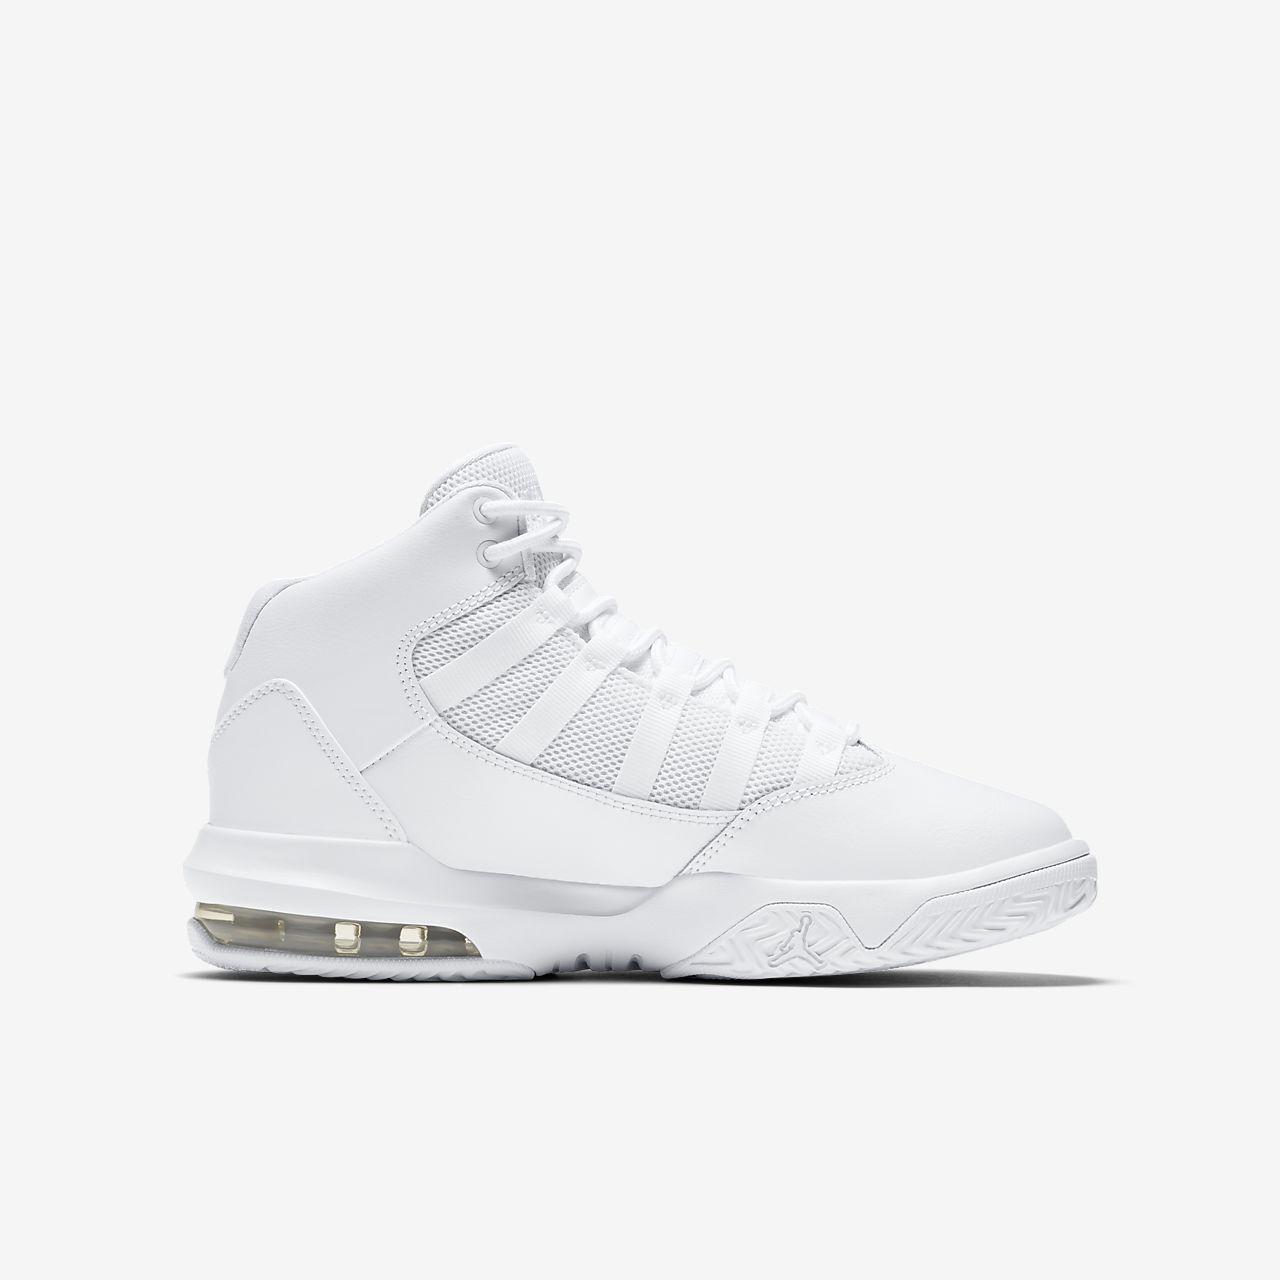 AIR JORDAN MAX AURA for £105.00 |